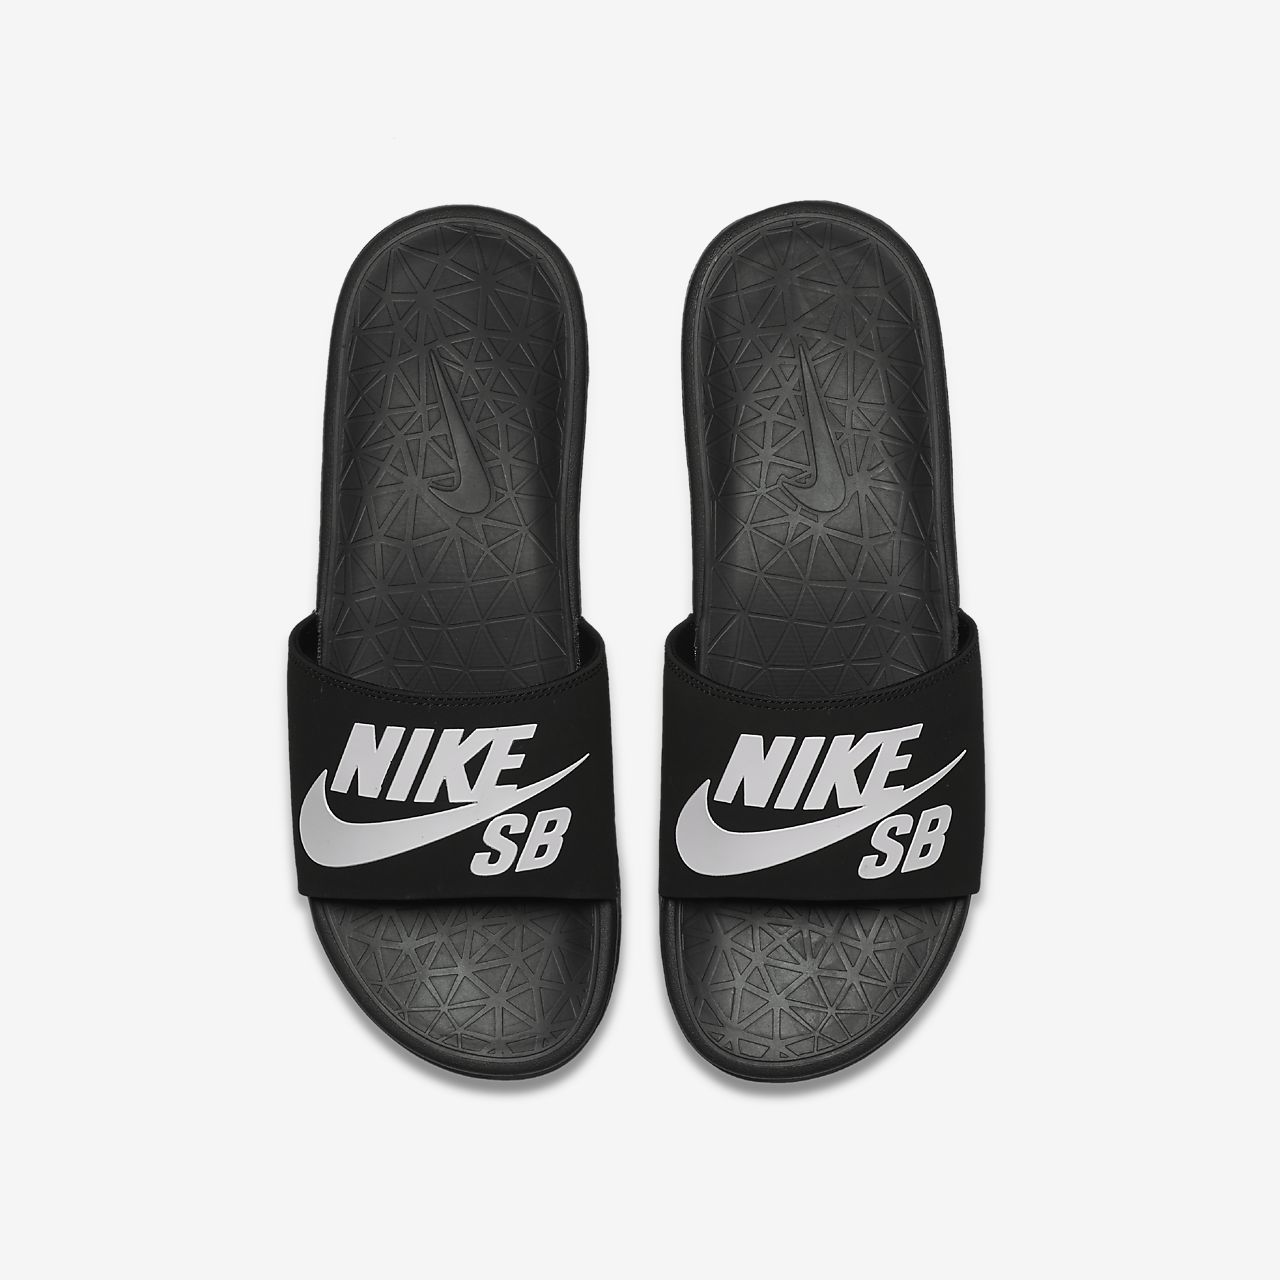 flops s flip t com comforter mens men slide for sb comfortable benassi solarsoft nike most